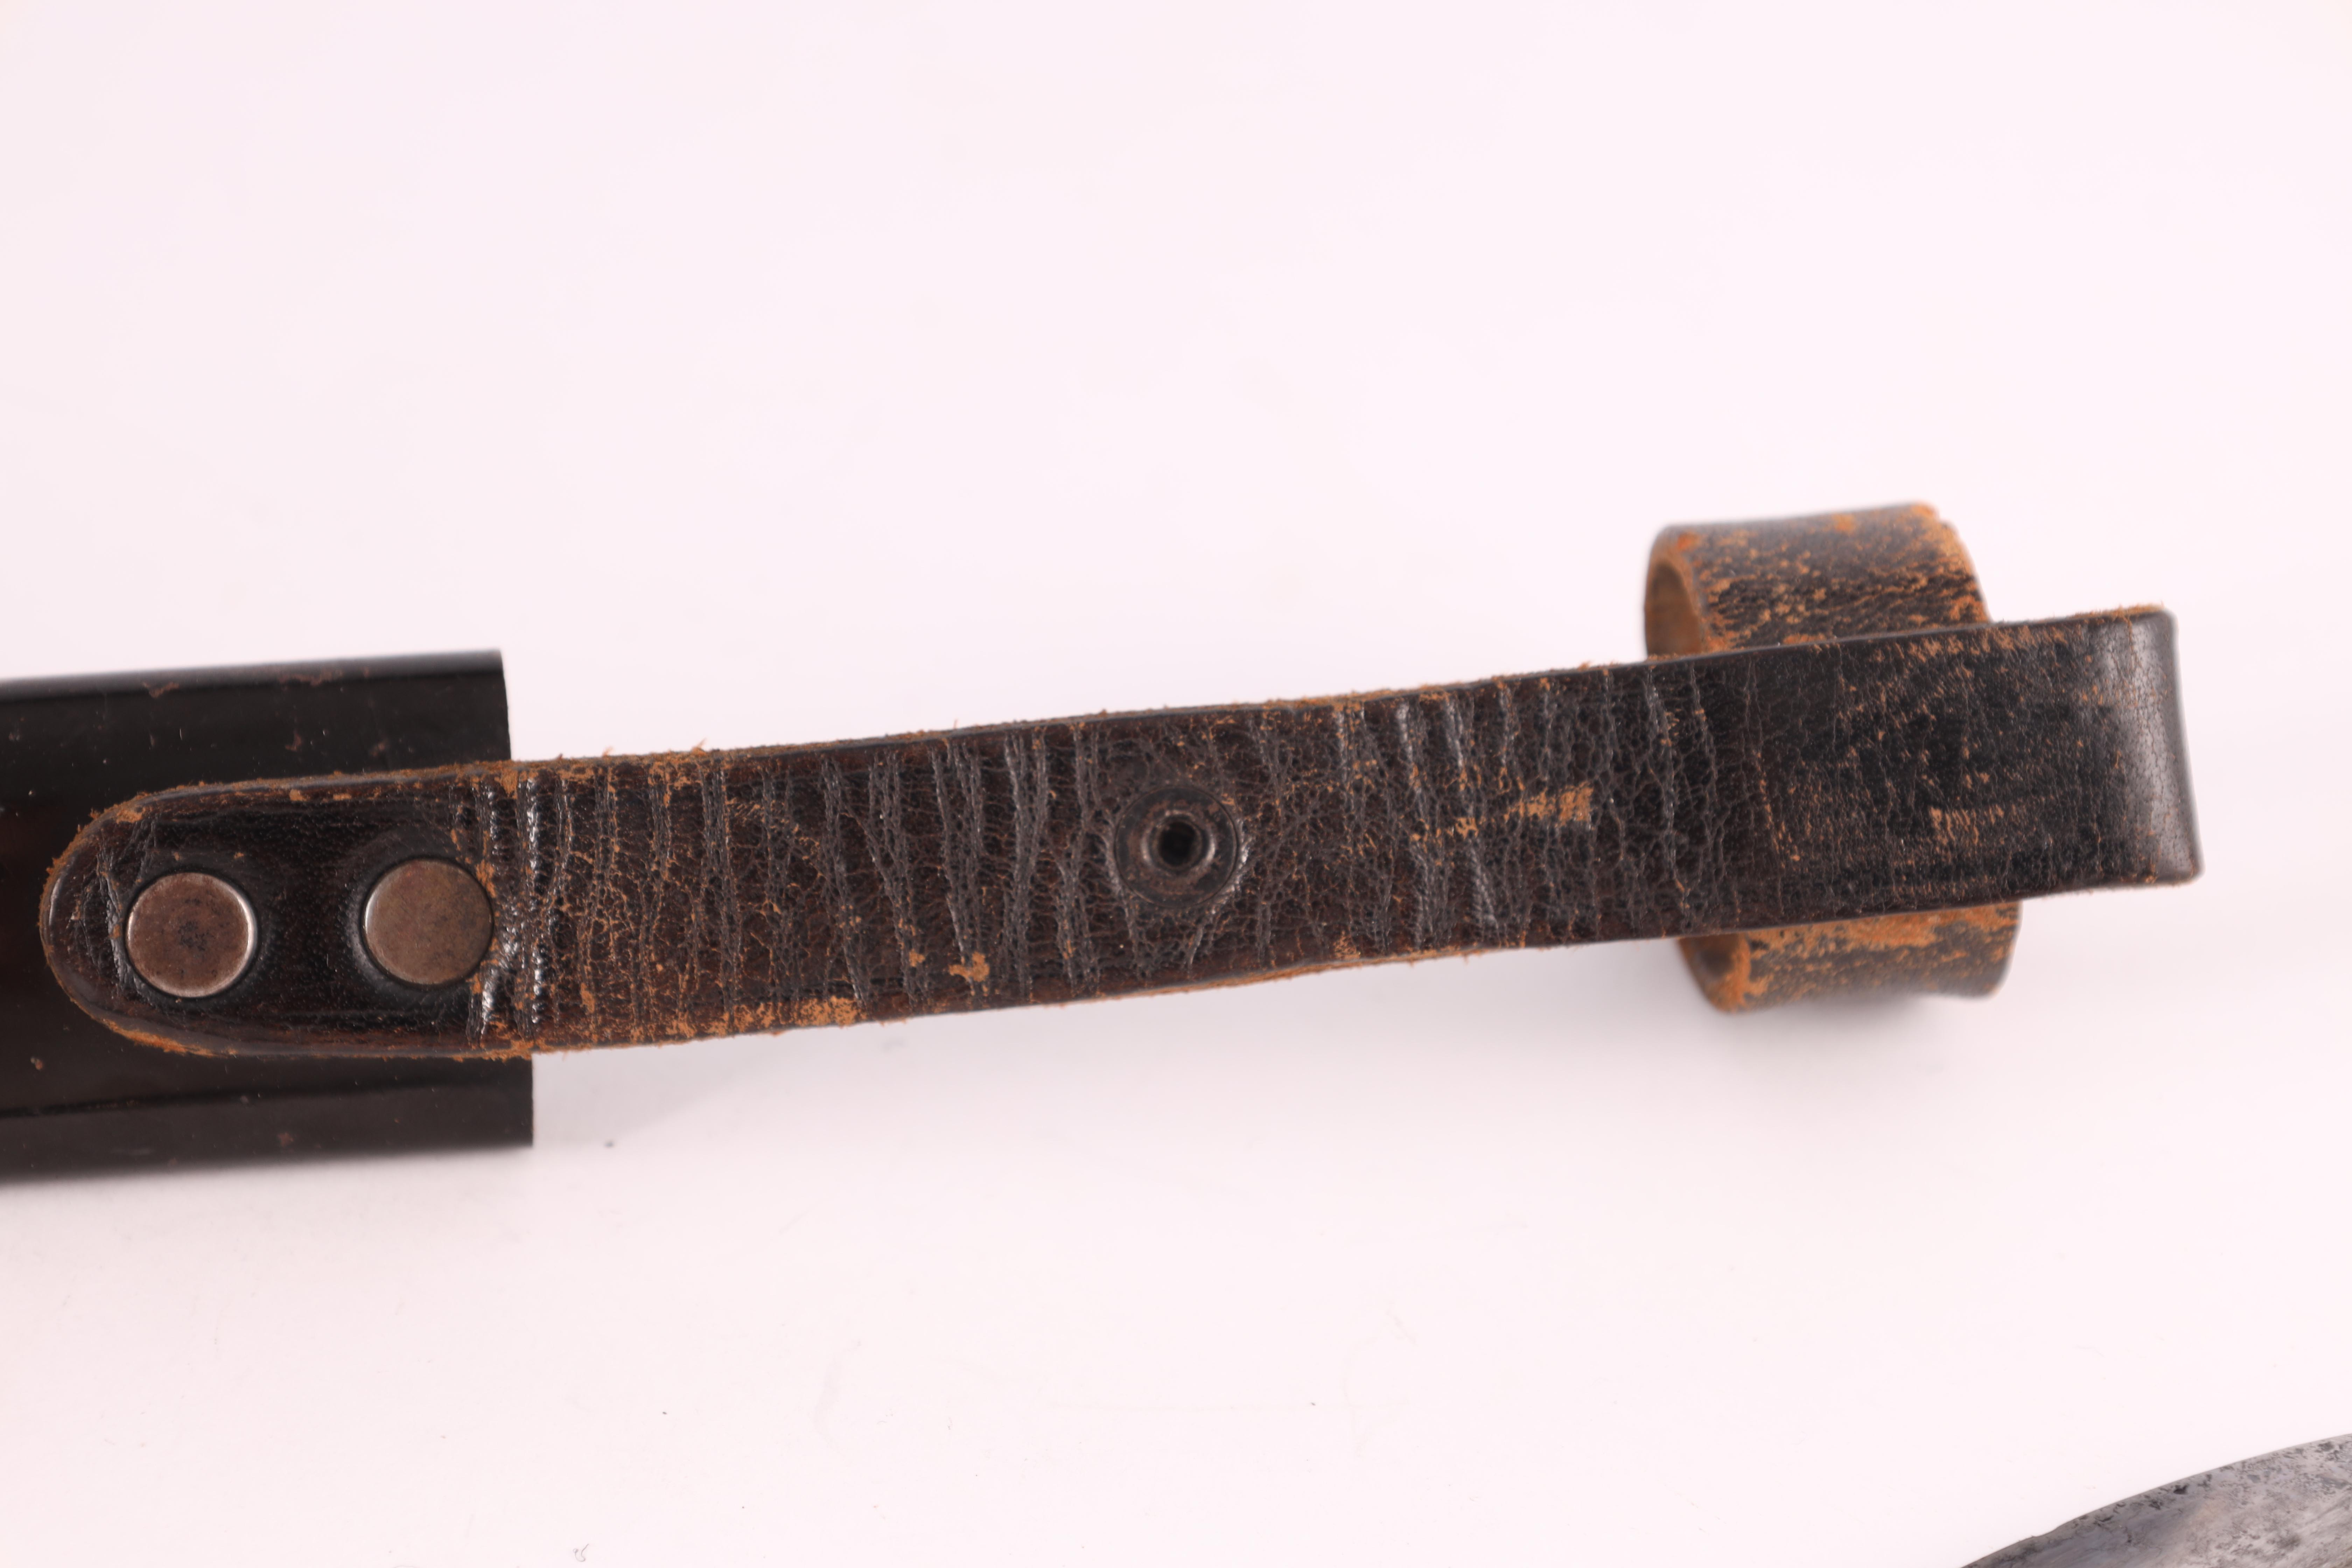 A WORLD WAR II GERMAN NAZI HITLER YOUTH DAGGER with checkered grip set with an enamel swastika badge - Image 9 of 9